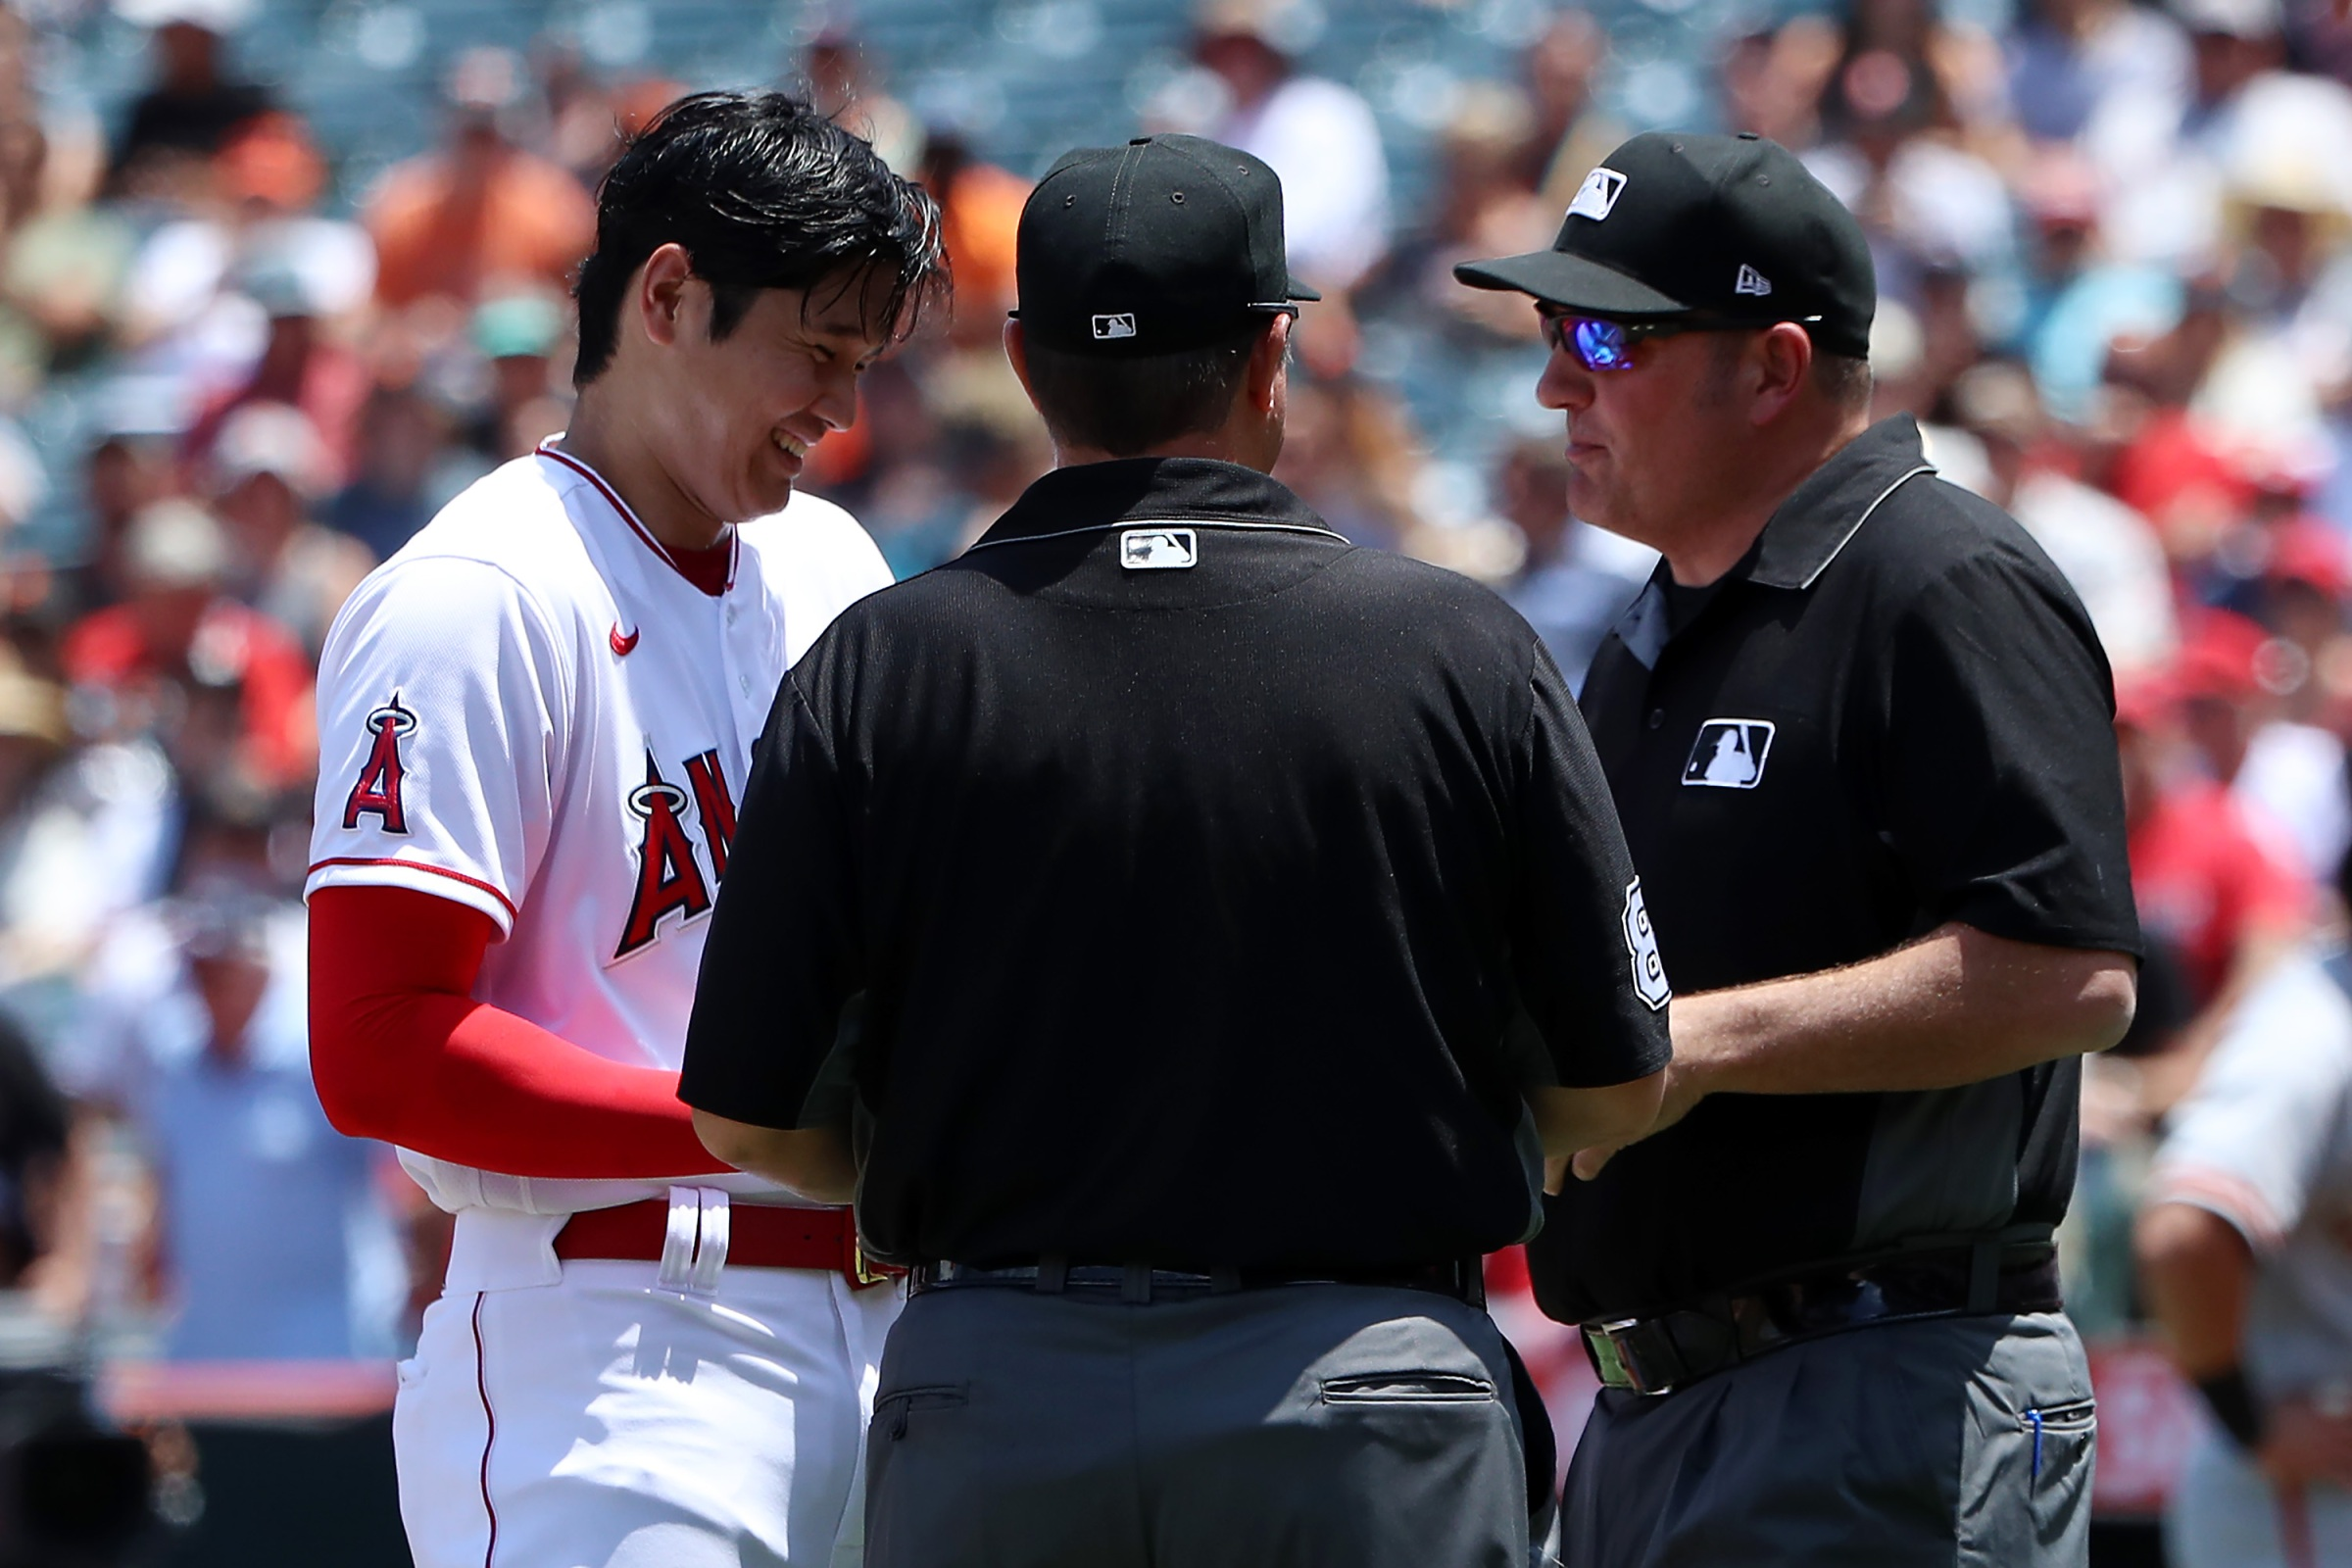 Shohei Ohtani chuckles good-naturedly through a search for sticky stuff.